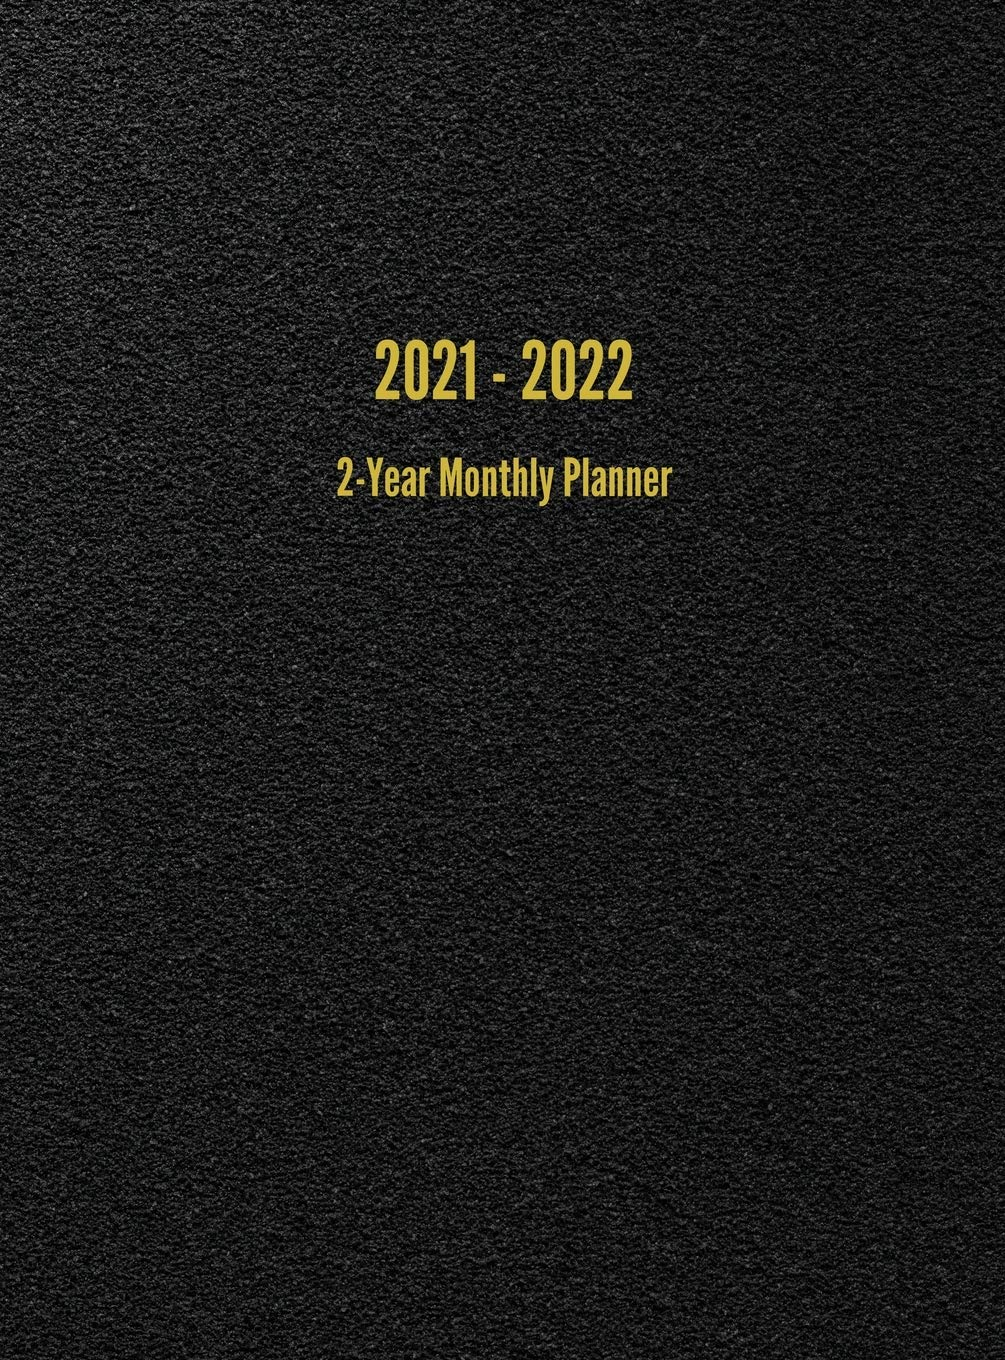 Calendar Books 2022.Buy 2021 2022 2 Year Monthly Planner 24 Month Calendar Black Book Online At Low Prices In India 2021 2022 2 Year Monthly Planner 24 Month Calendar Black Reviews Ratings Amazon In